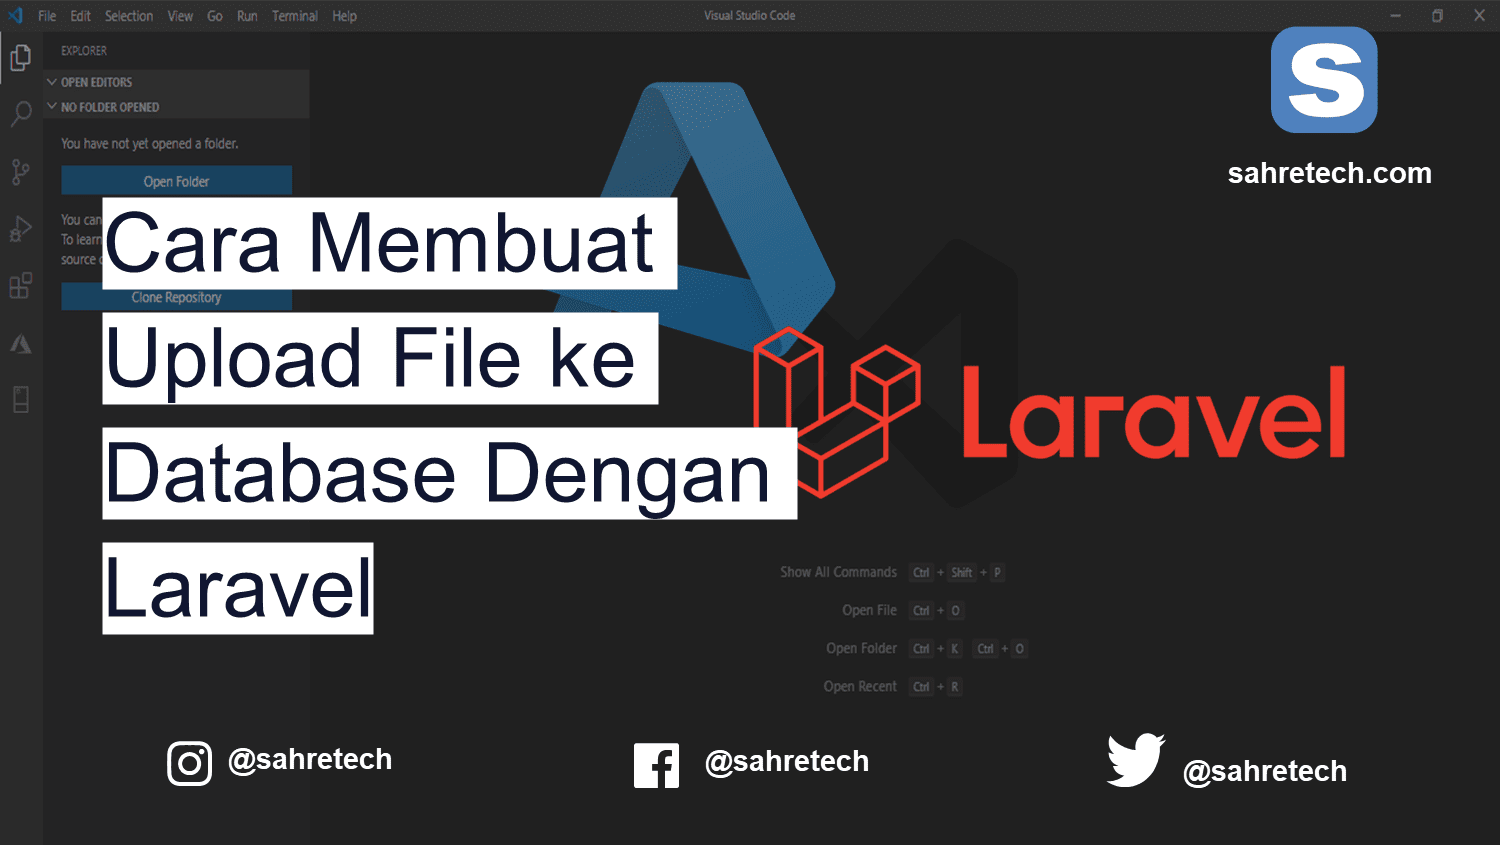 Cara Membuat Upload File ke Database Dengan Laravel